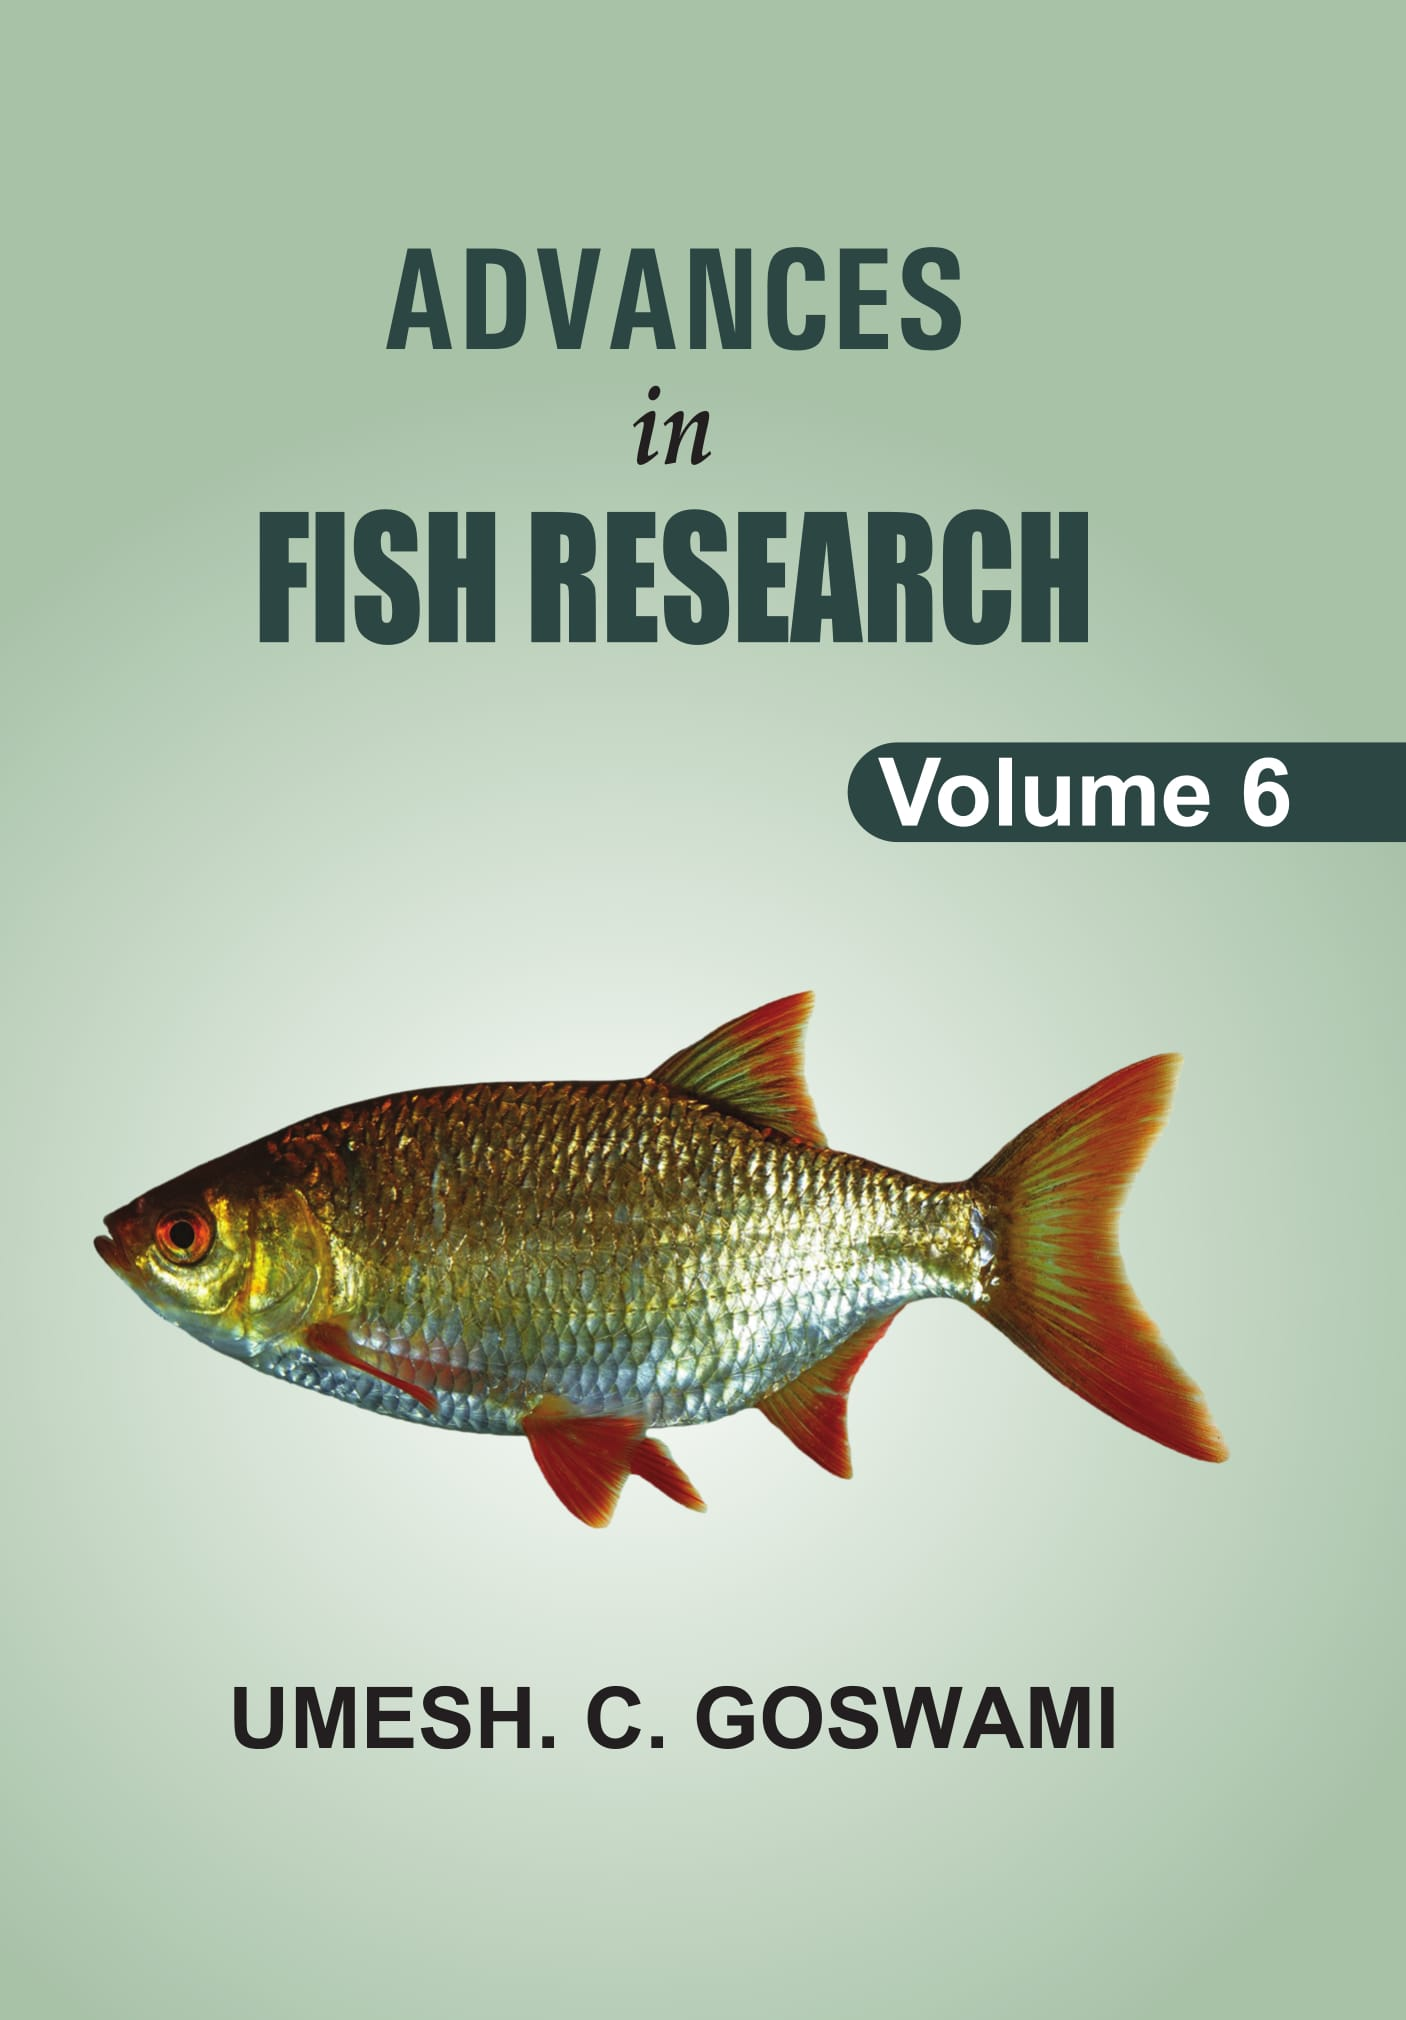 Advances in Fish Research Vol VI